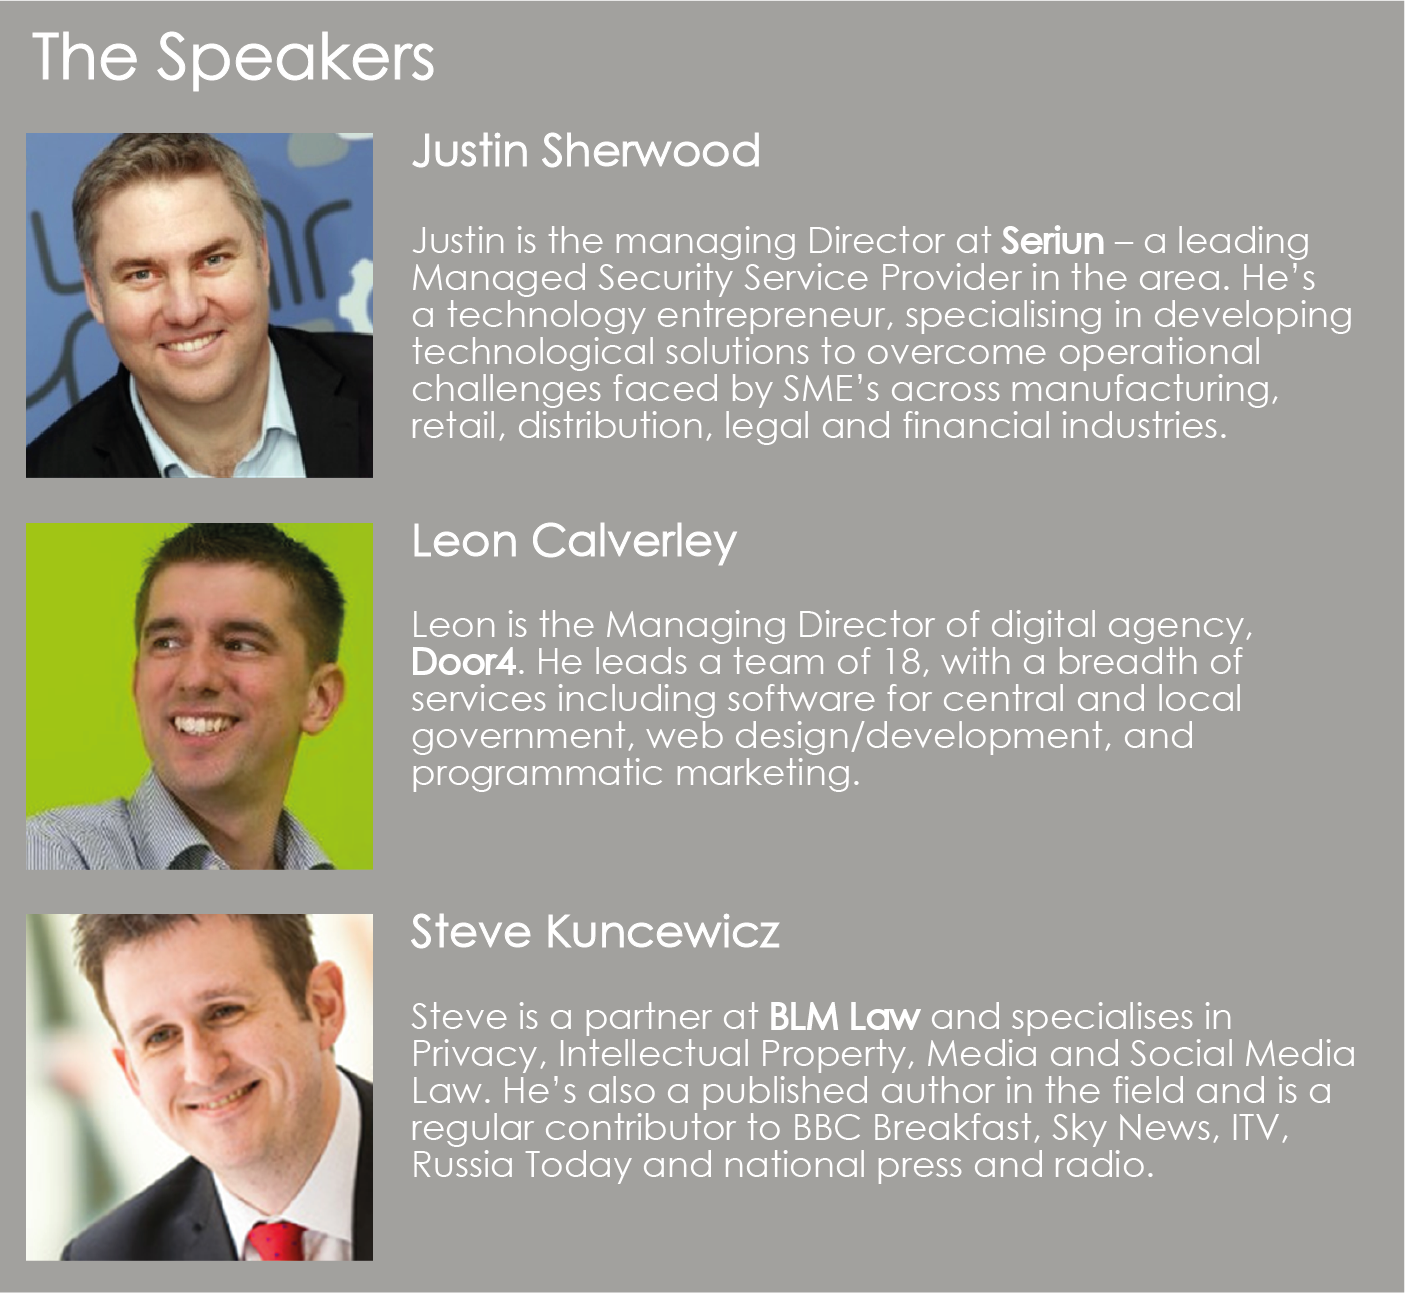 The speakers overview